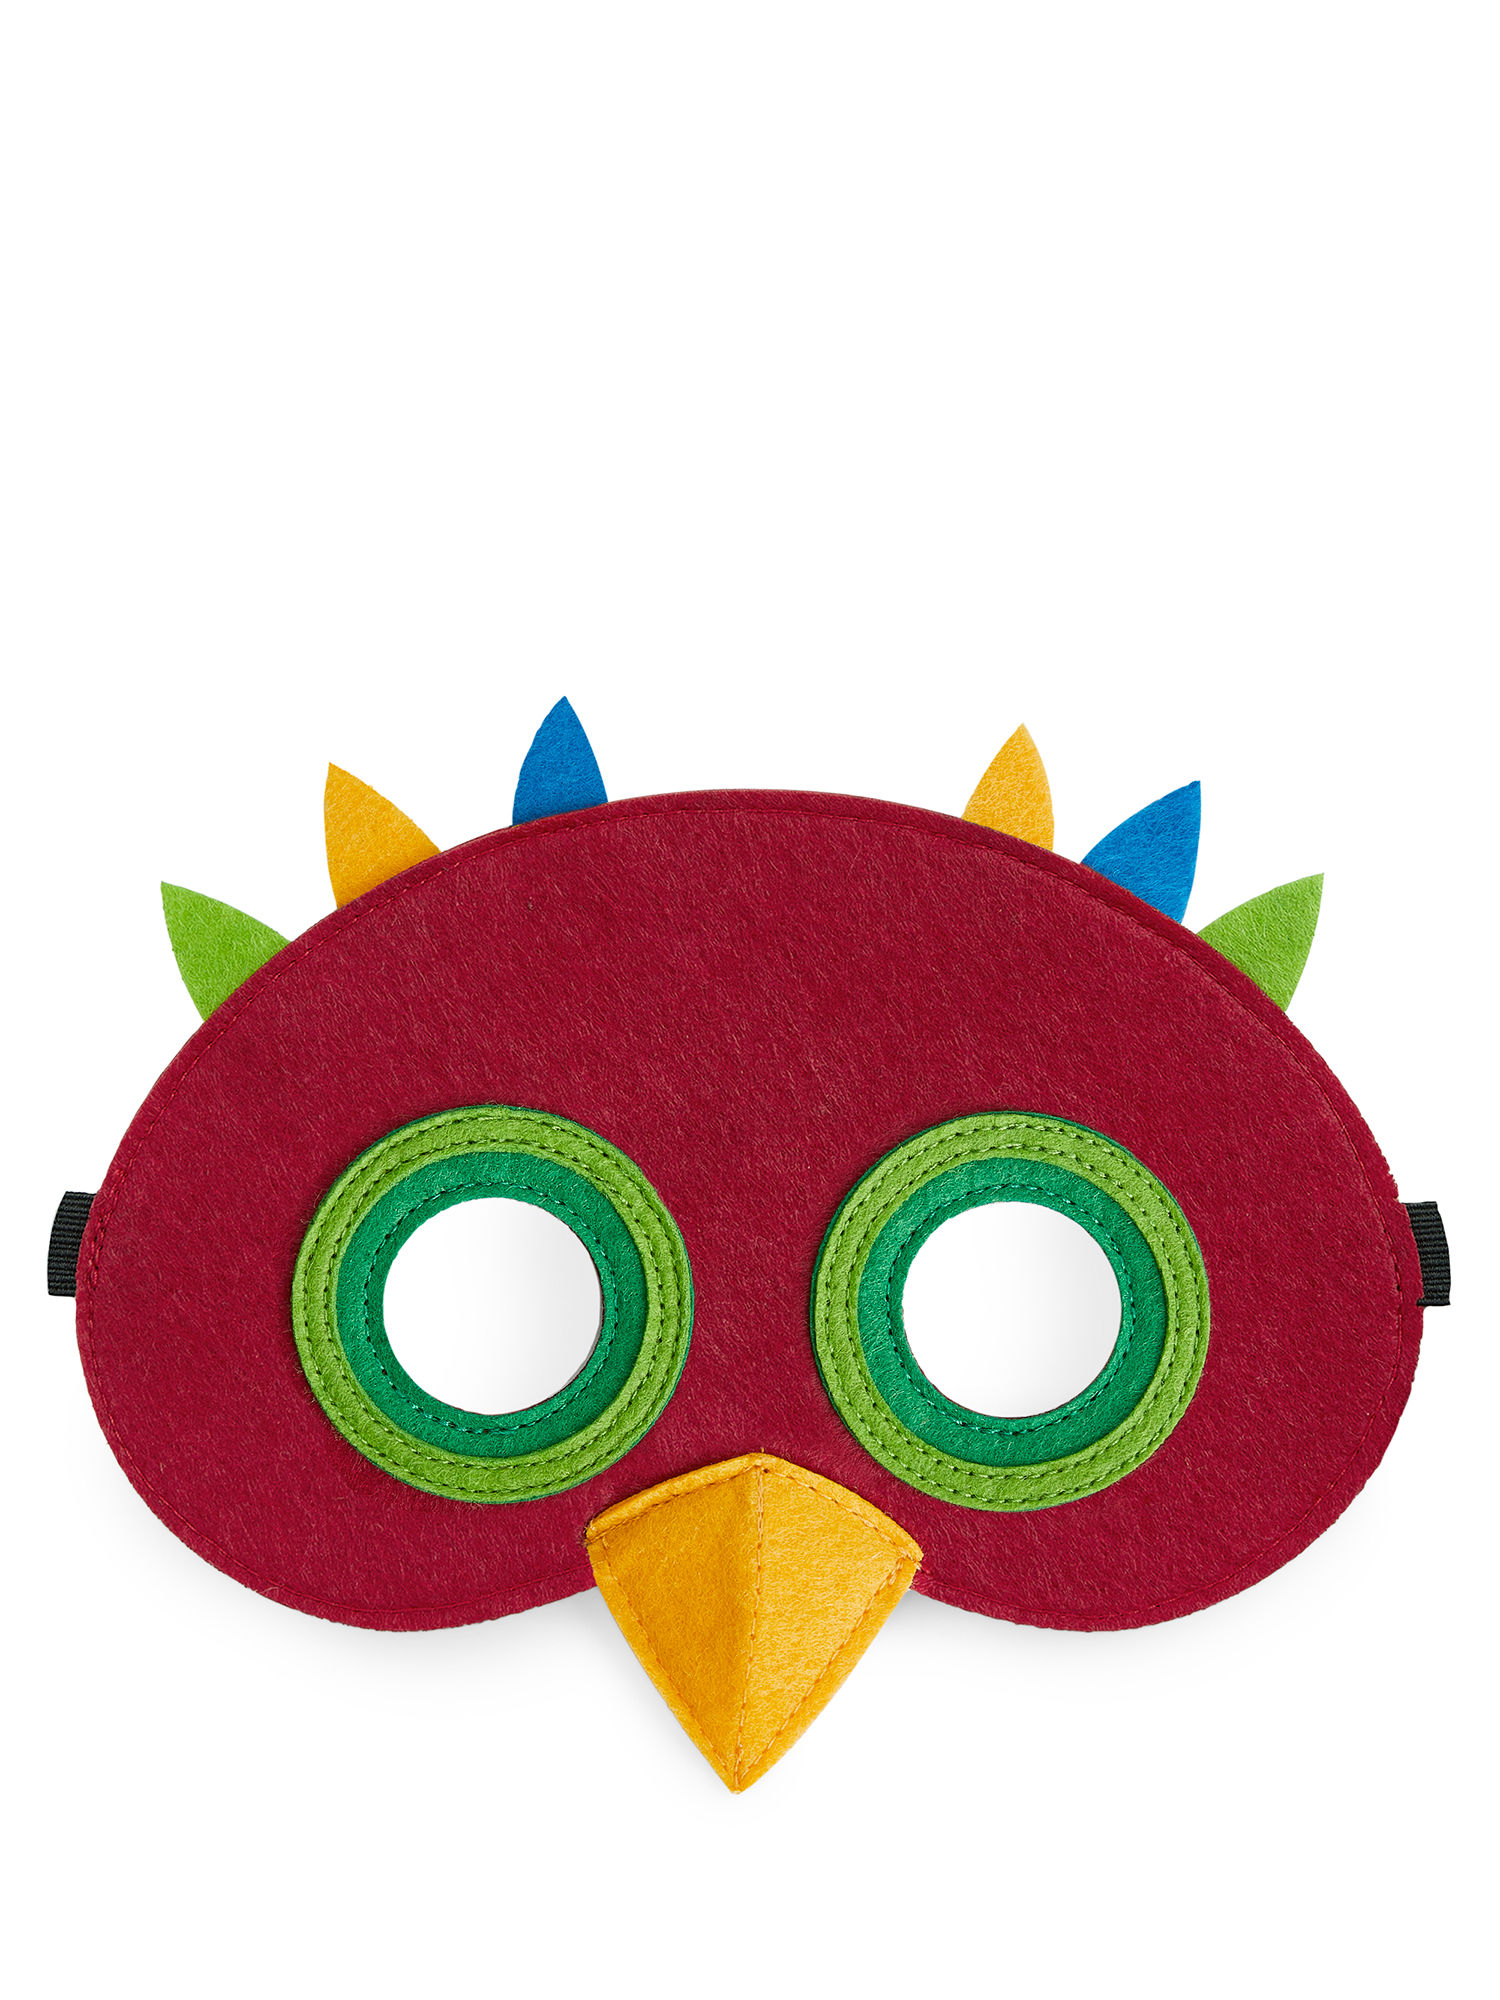 Fabric Swatch image of Arket animal mask in red